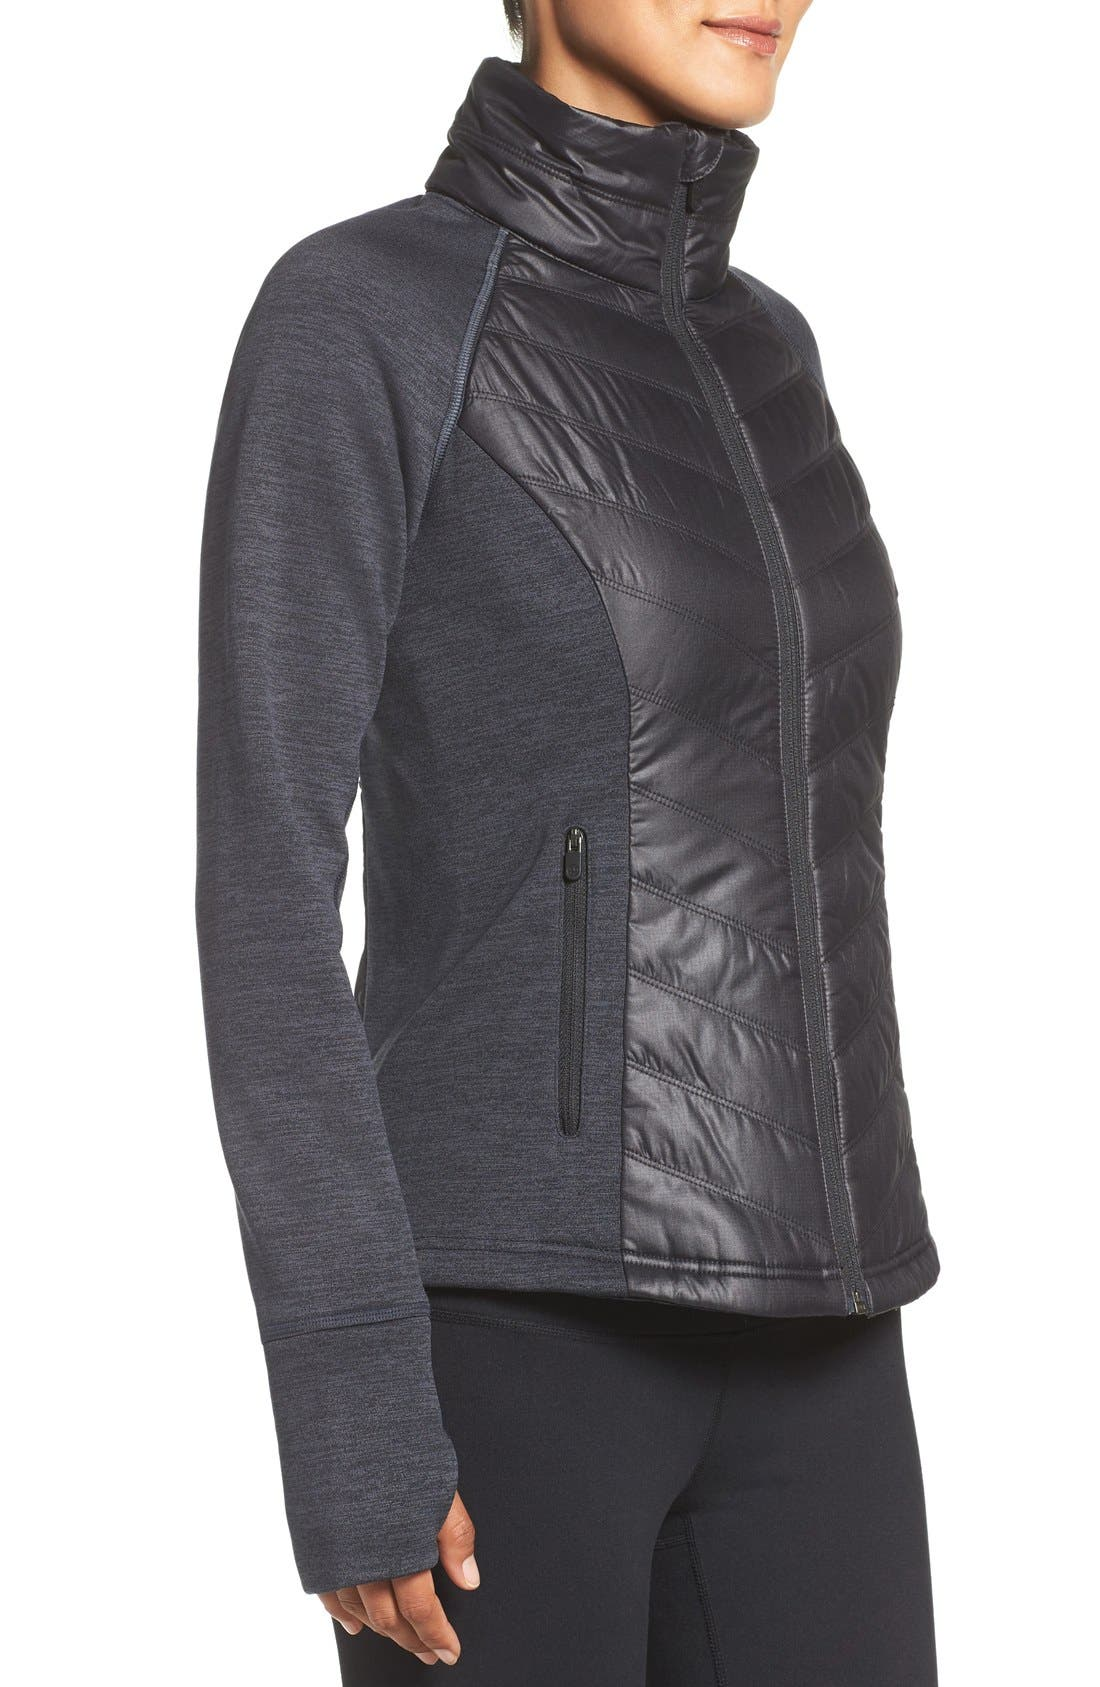 Zelfusion Reflective Quilted Jacket,                             Alternate thumbnail 39, color,